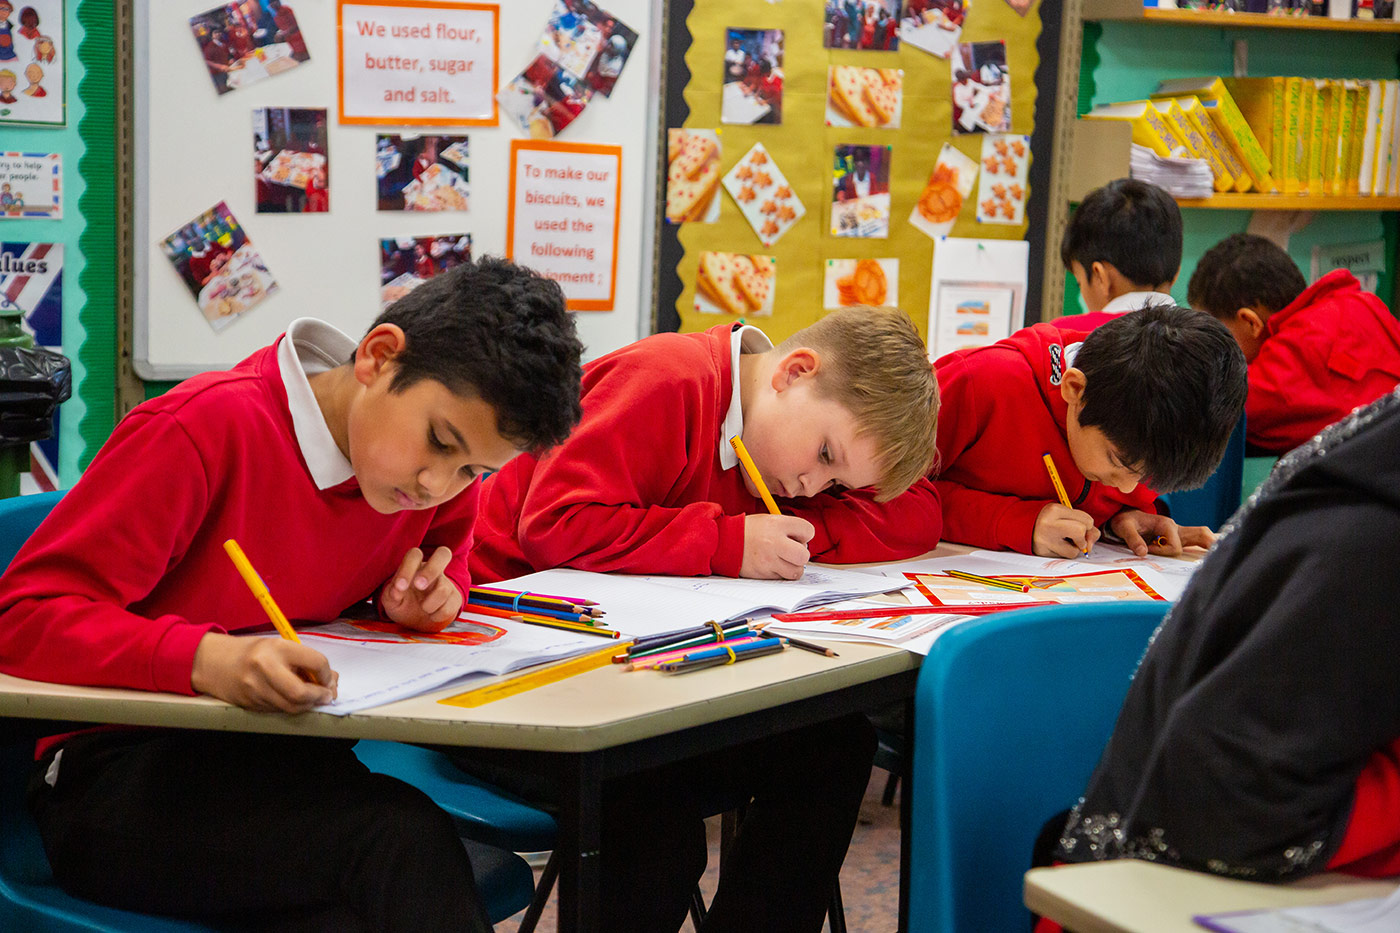 Curriculum Year 4 - Orchard Primary School Hounslow